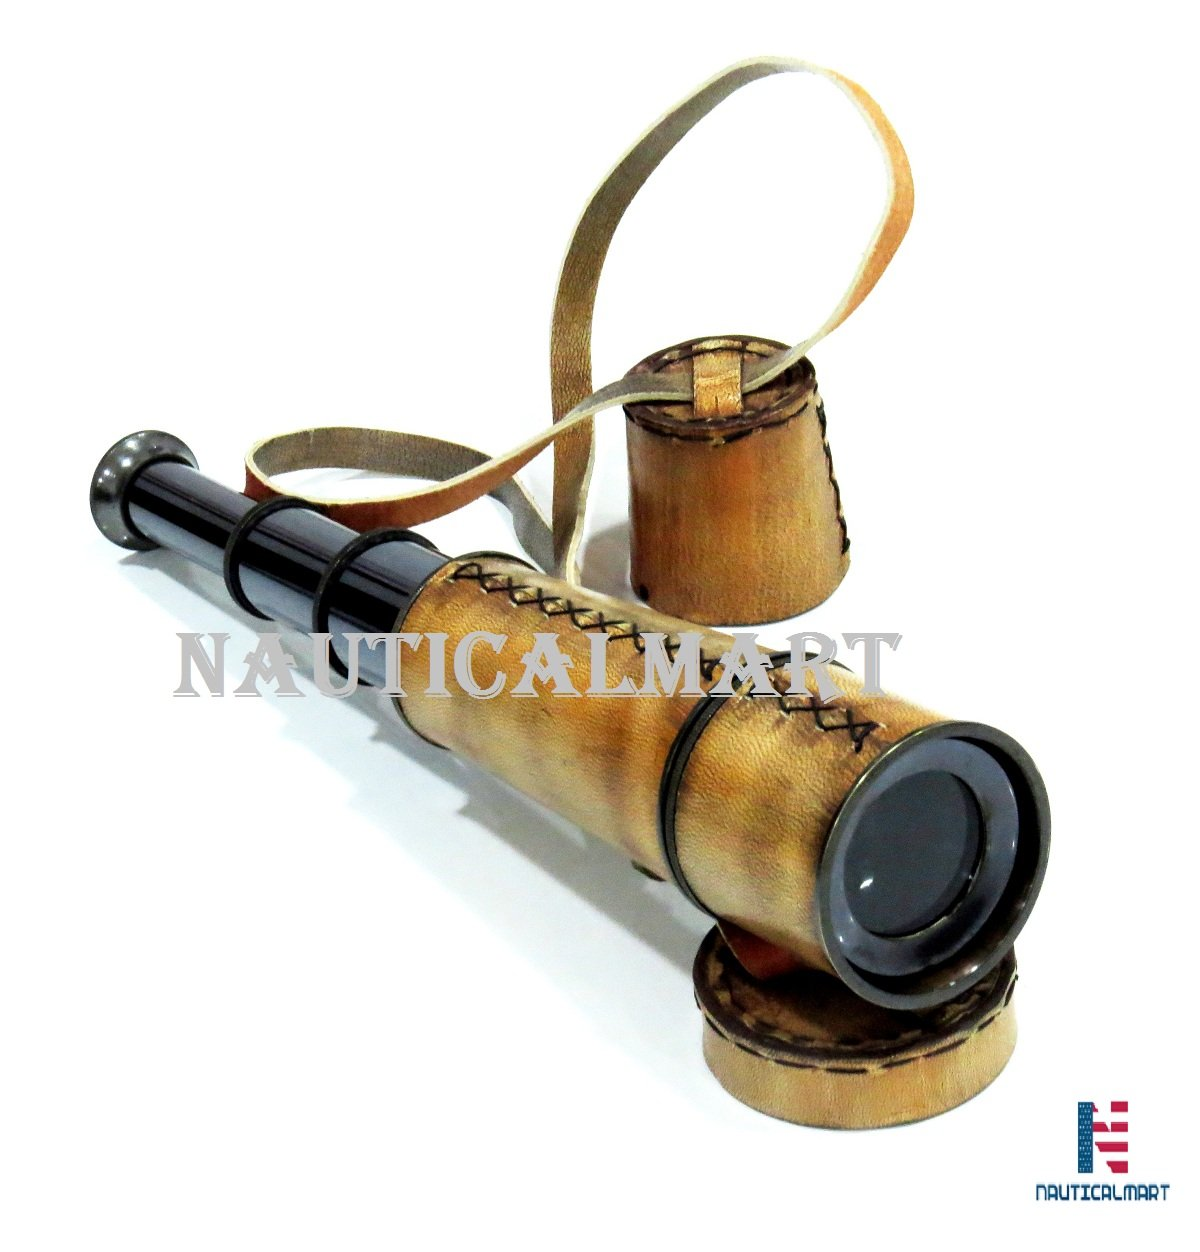 NAUTICALMART Antique Maritime Spyglass Telescope with Carry Belt 16''